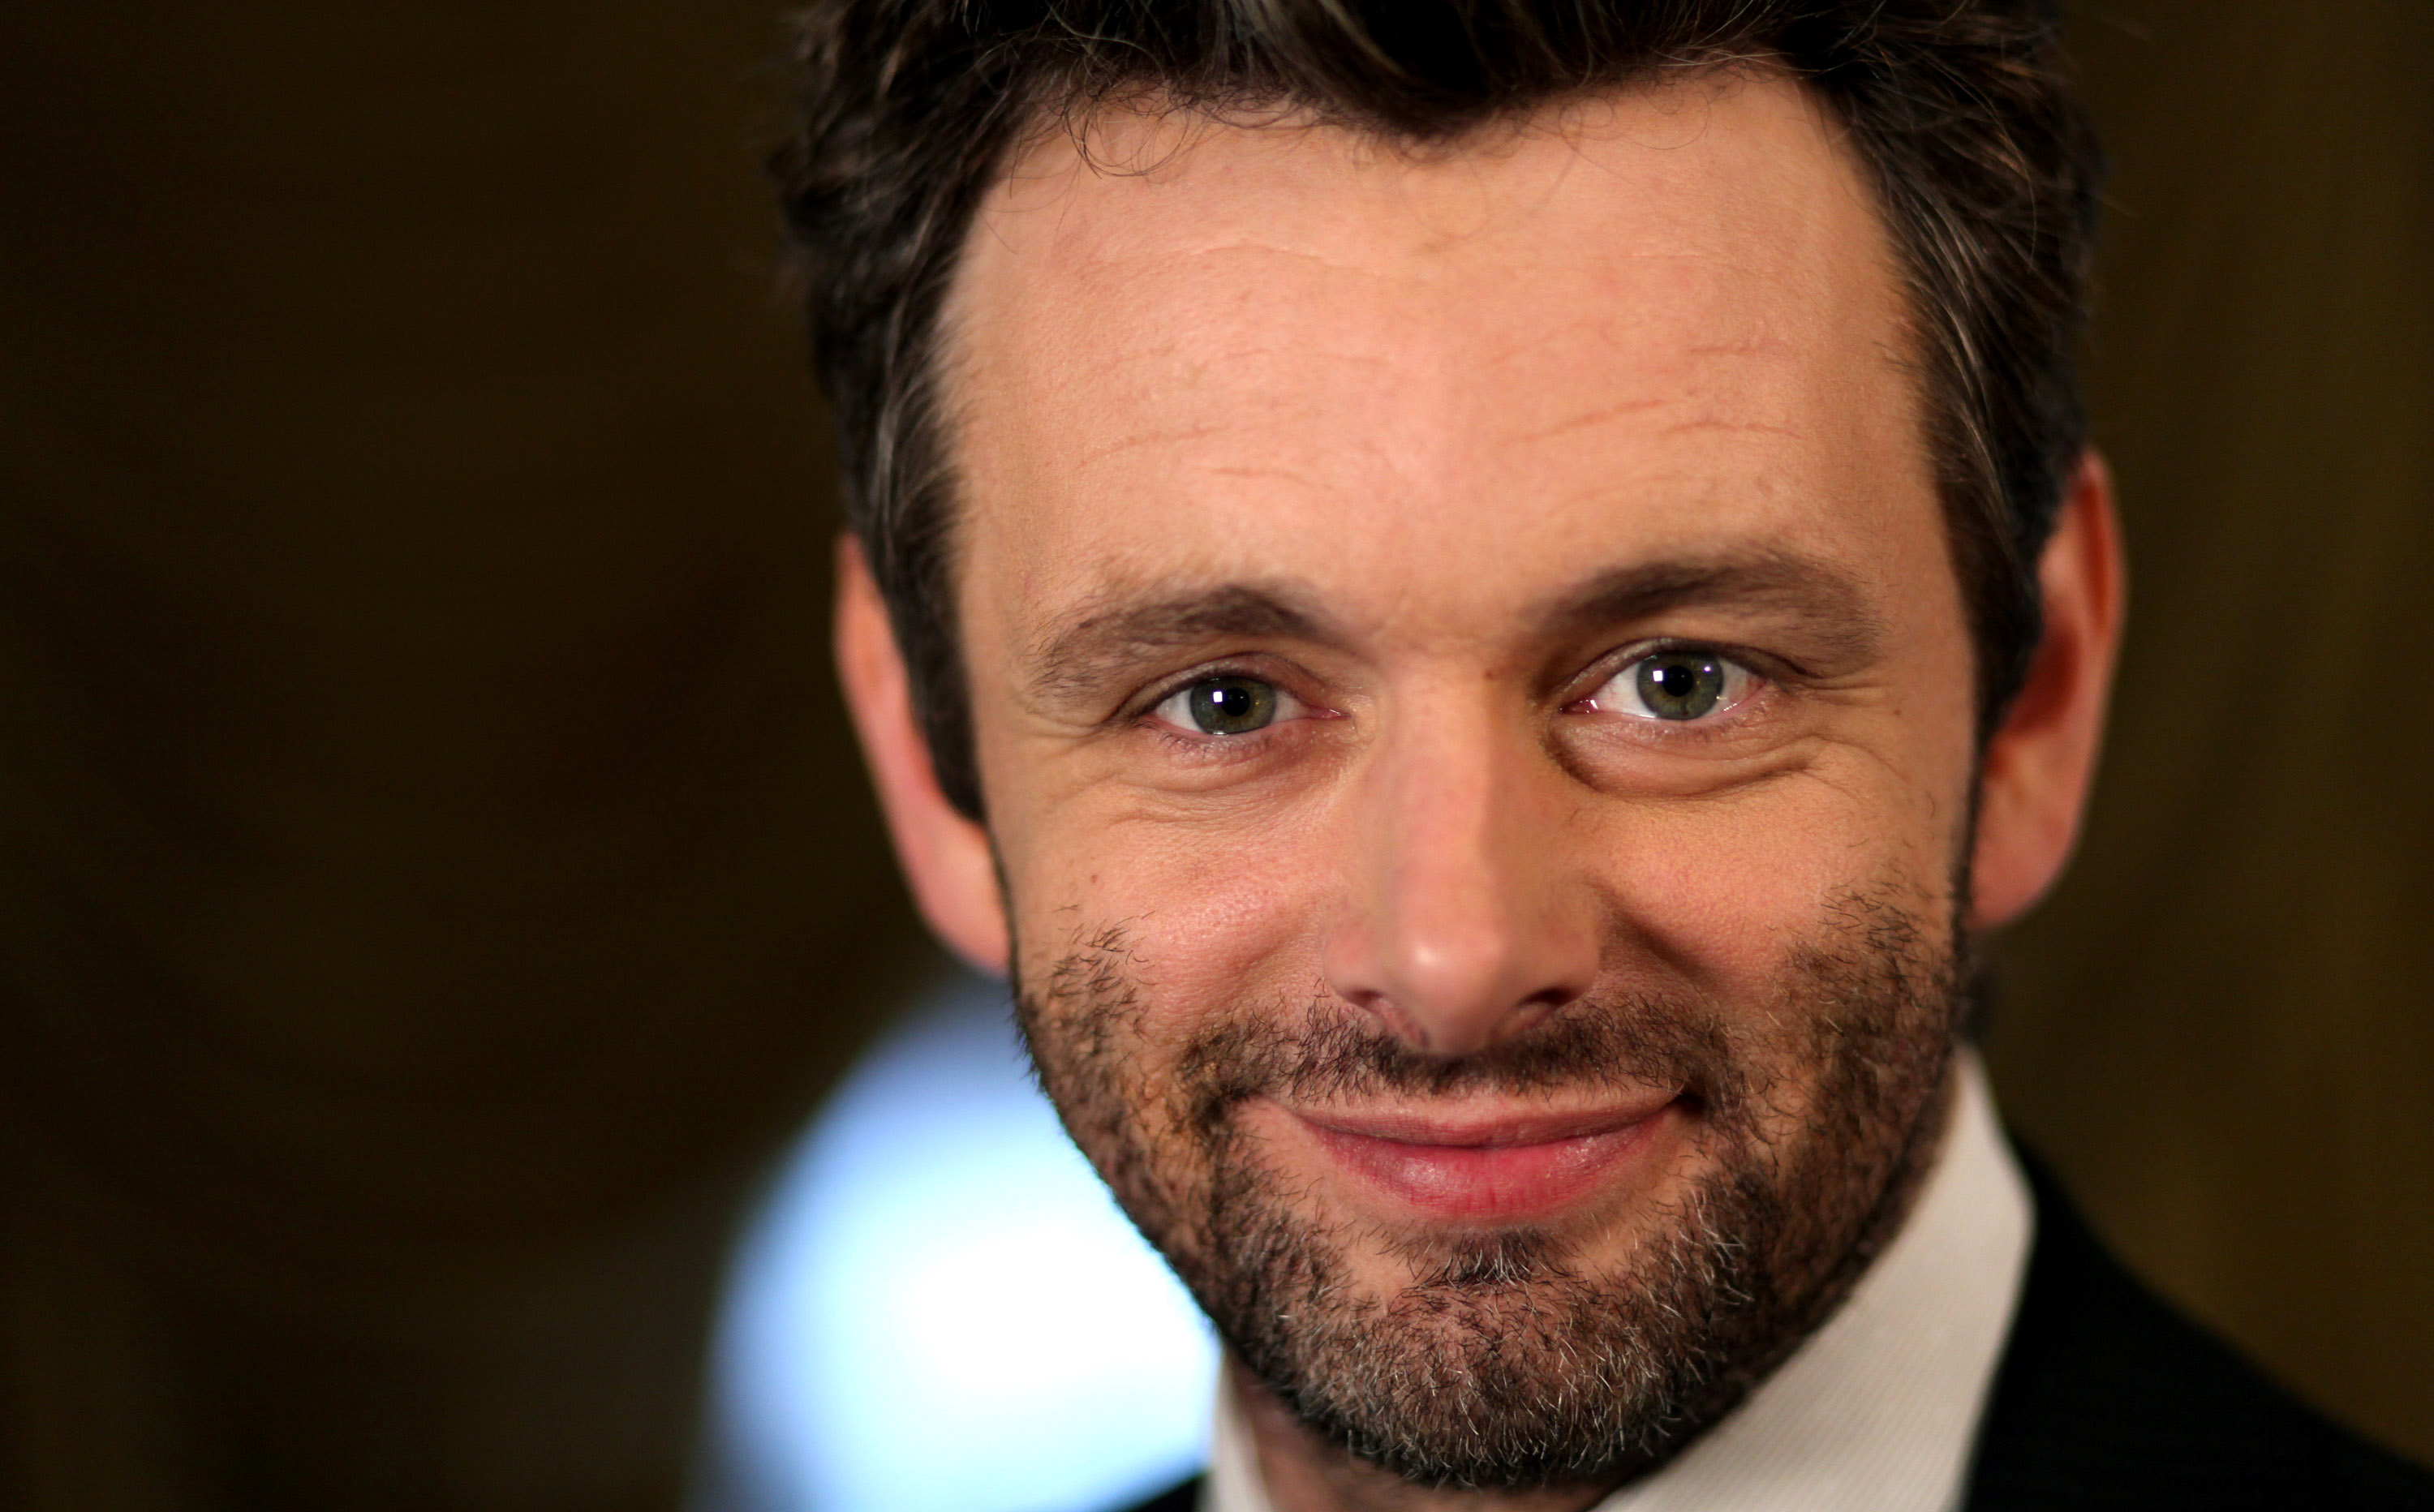 Actor Michael Sheen poses for a portrait in Beverly Hills, Calif. on Tuesday, Oct. 6, 2009. (AP Photo/Matt Sayles)